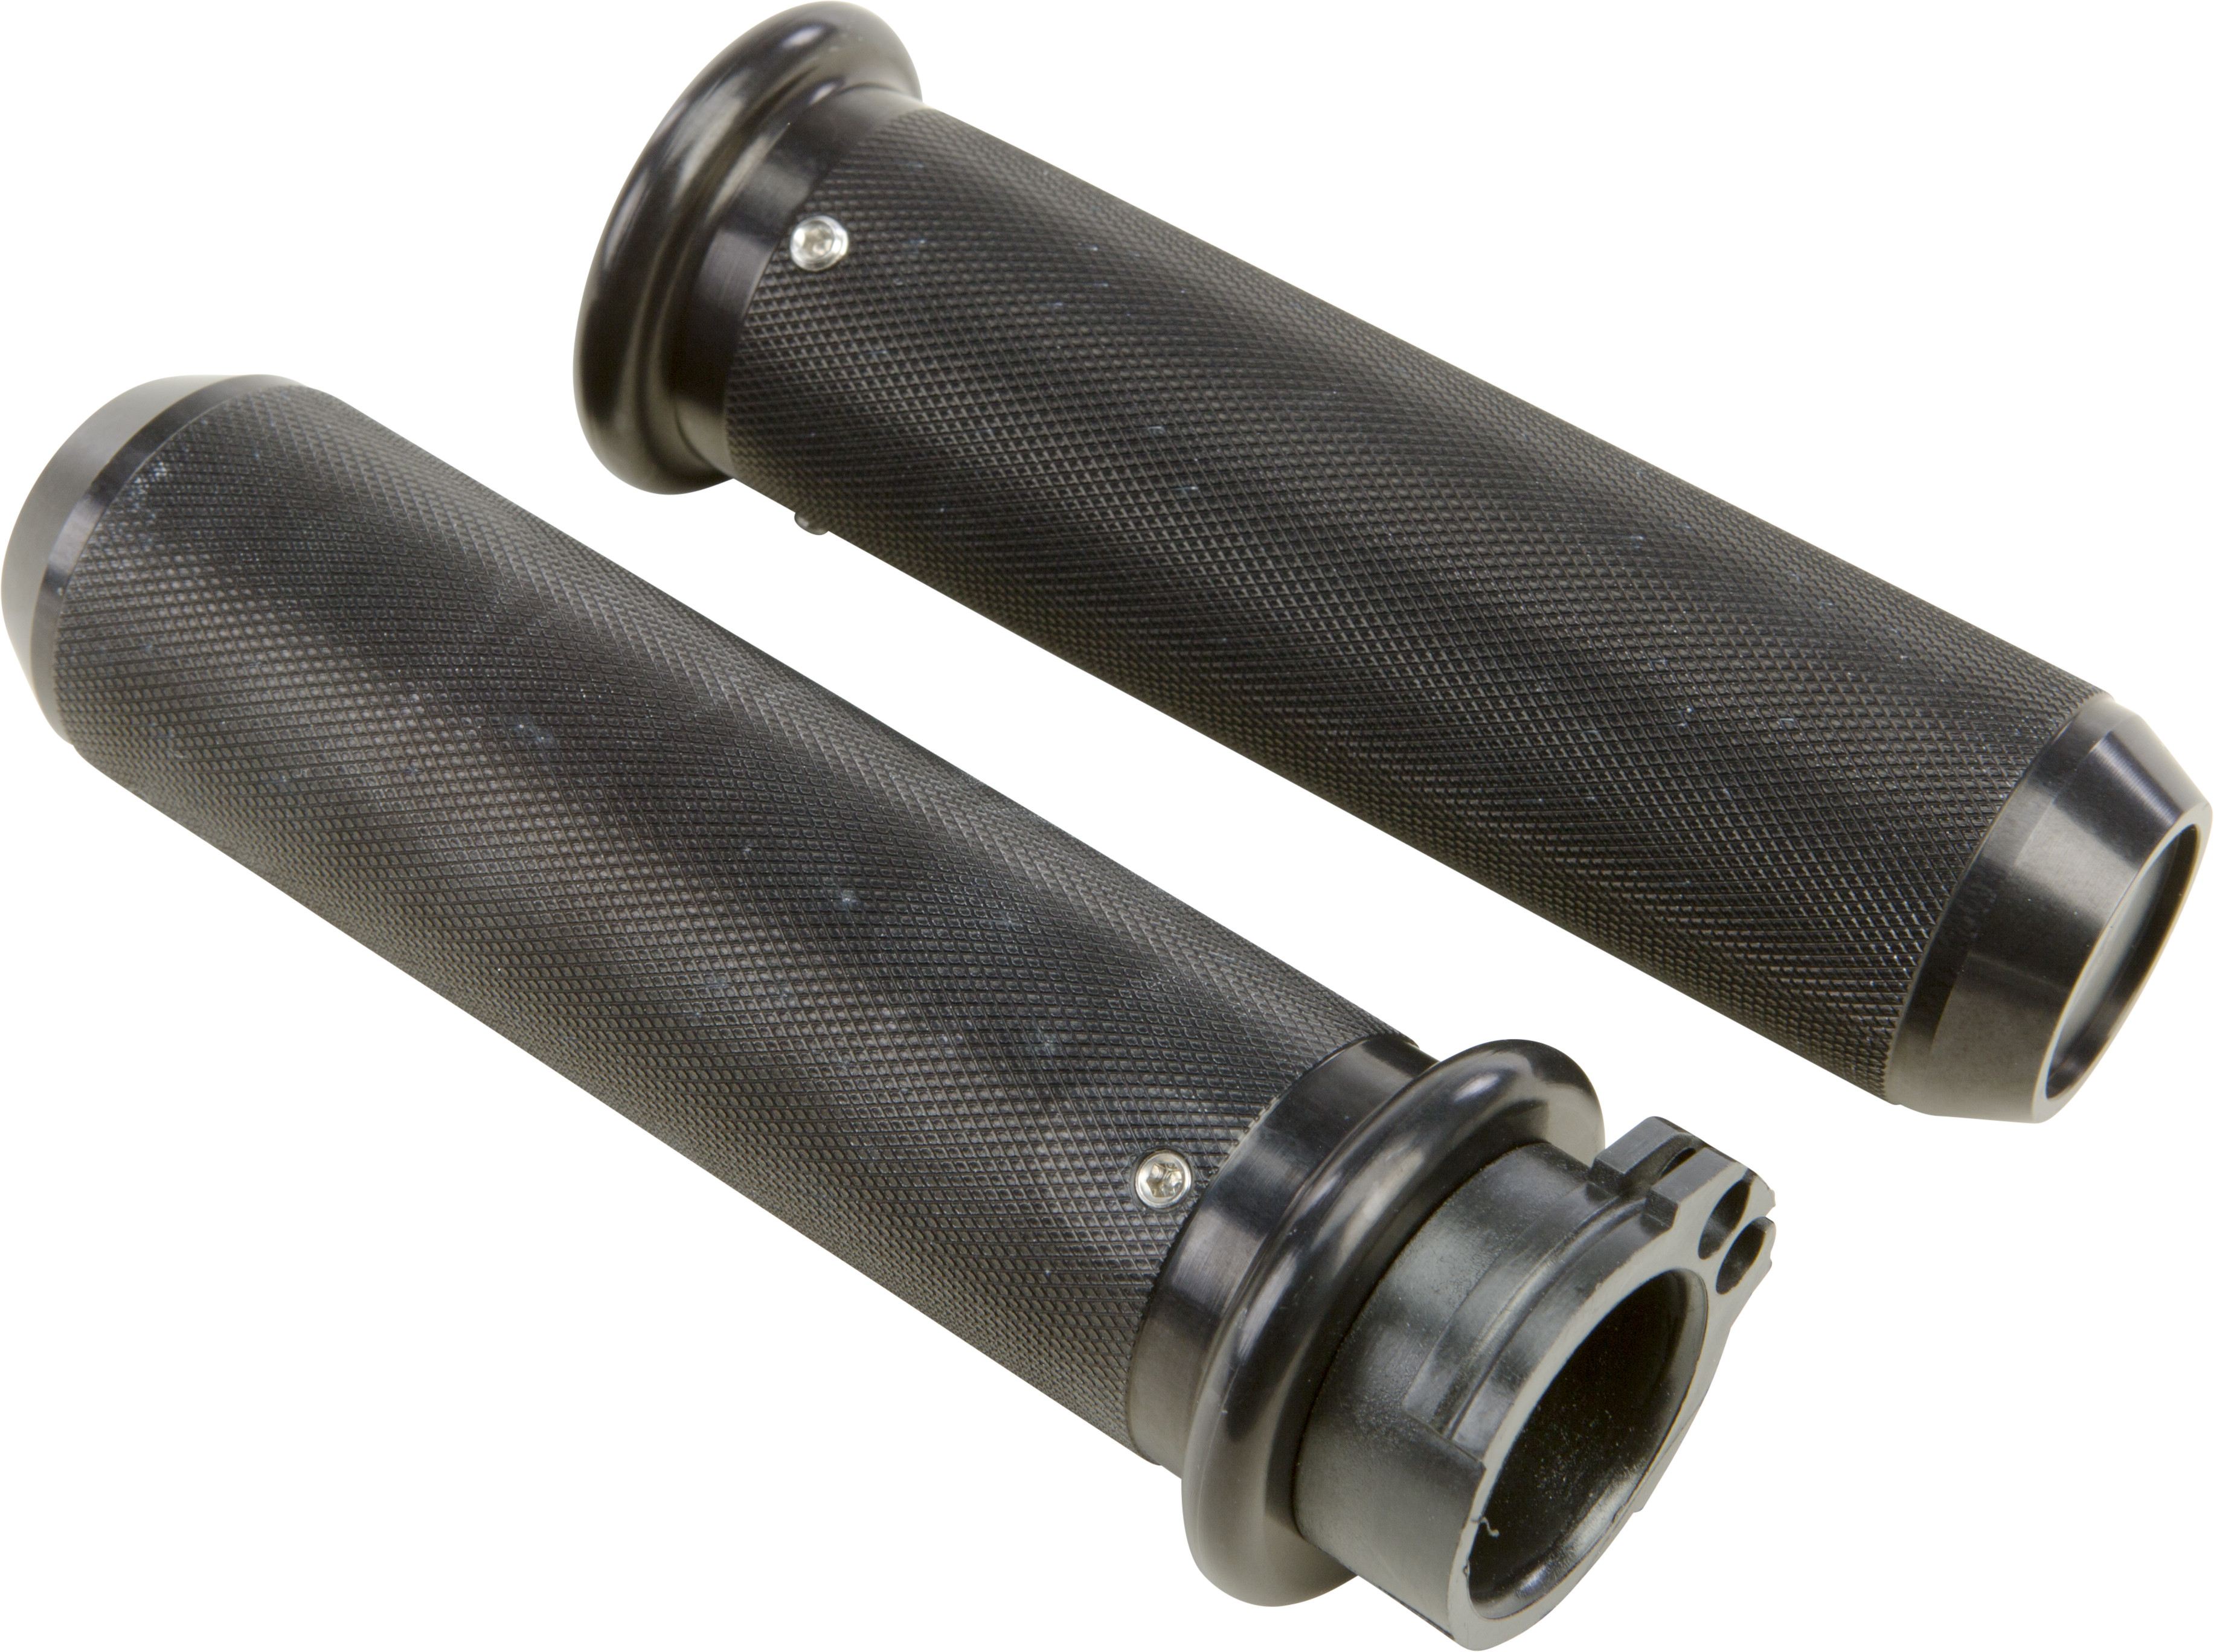 "1"" Knurled Grips"